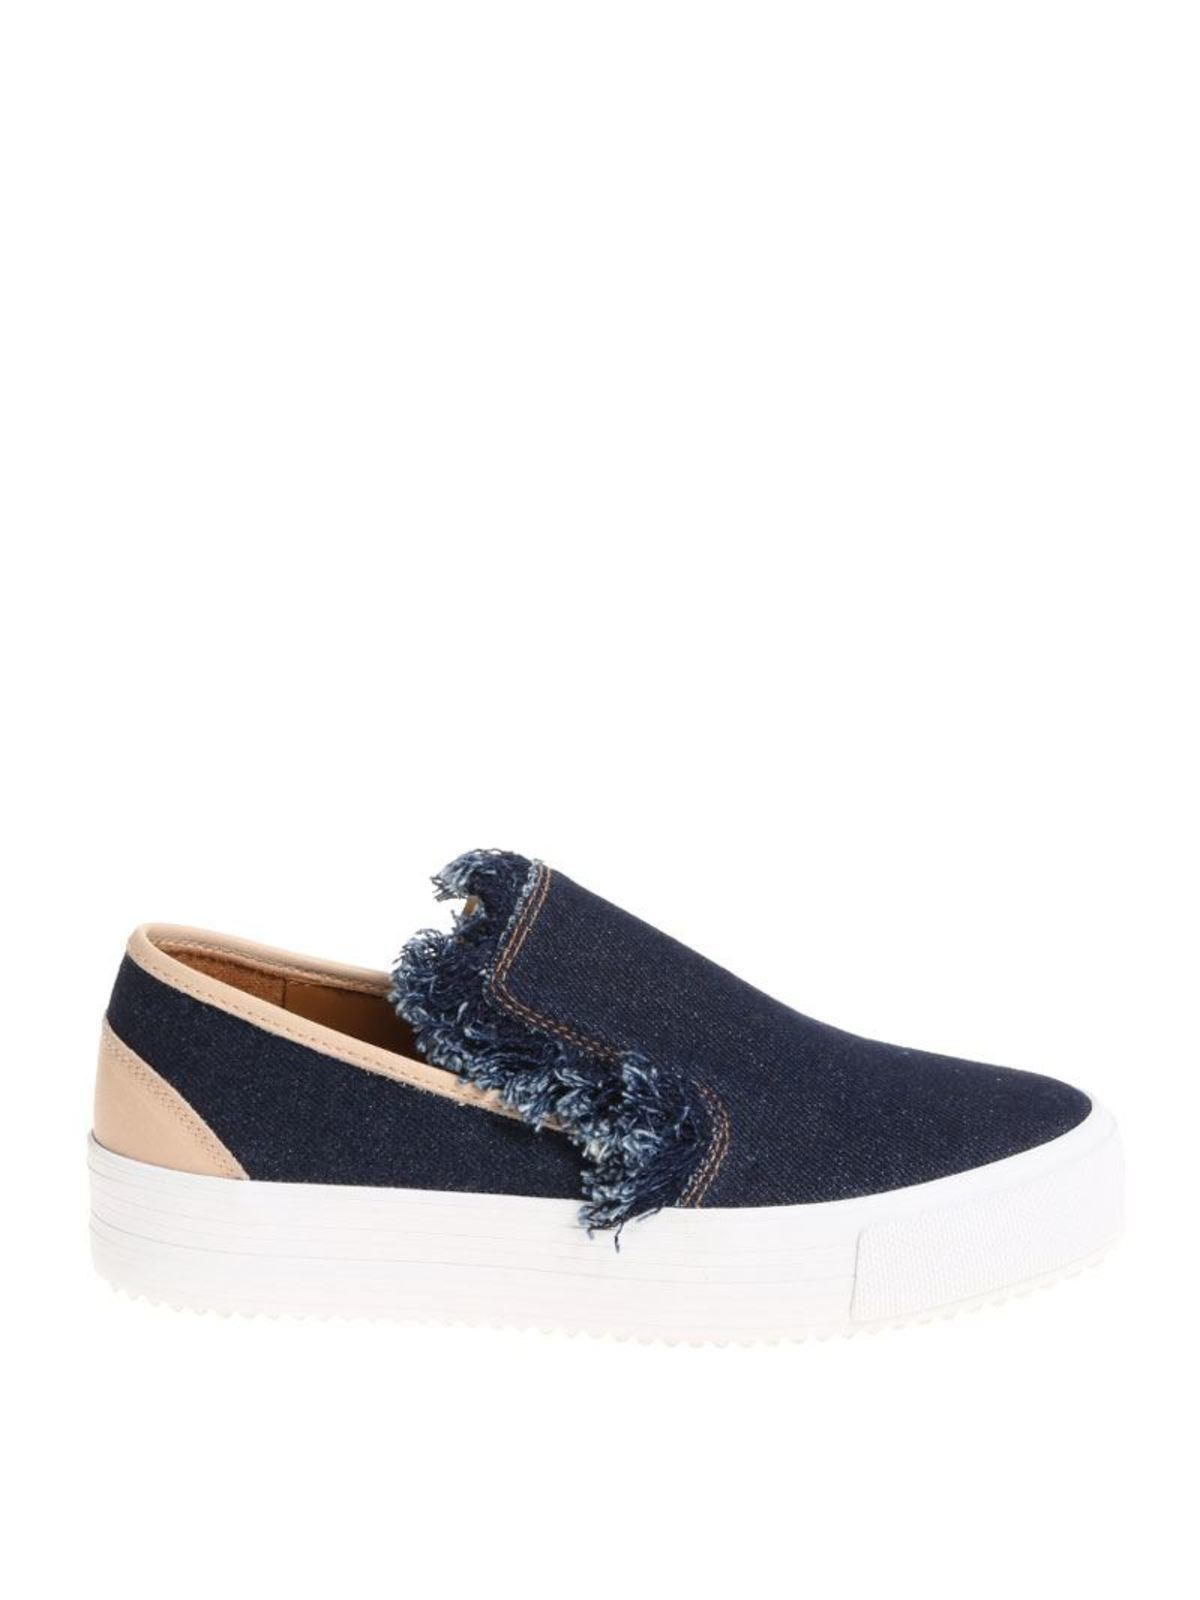 Slip-on sneakers with fringes